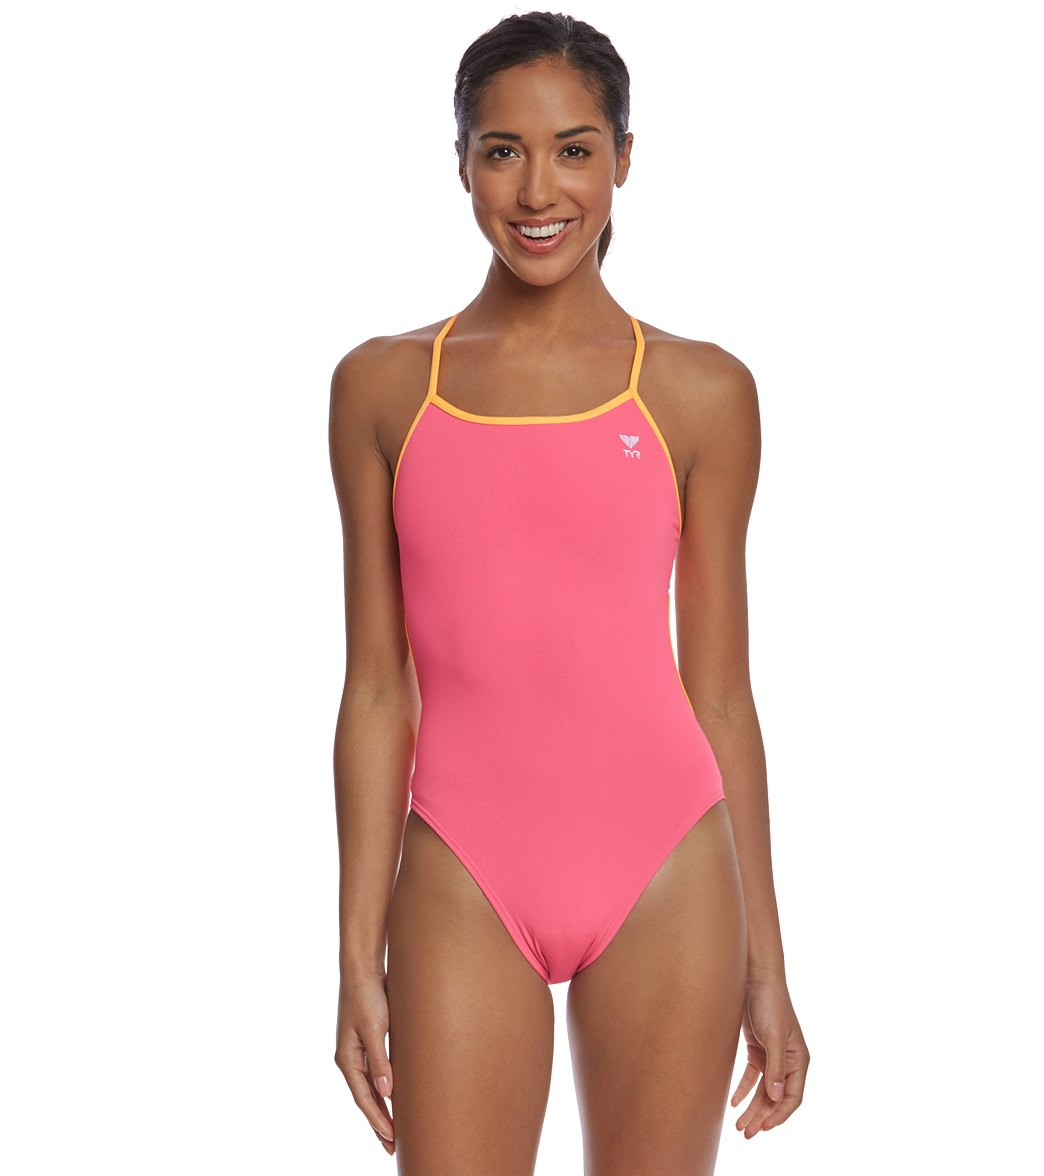 33e5390fa0 TYR Women's Solid Trinityfit One Piece Swimsuit at SwimOutlet.com - Free  Shipping